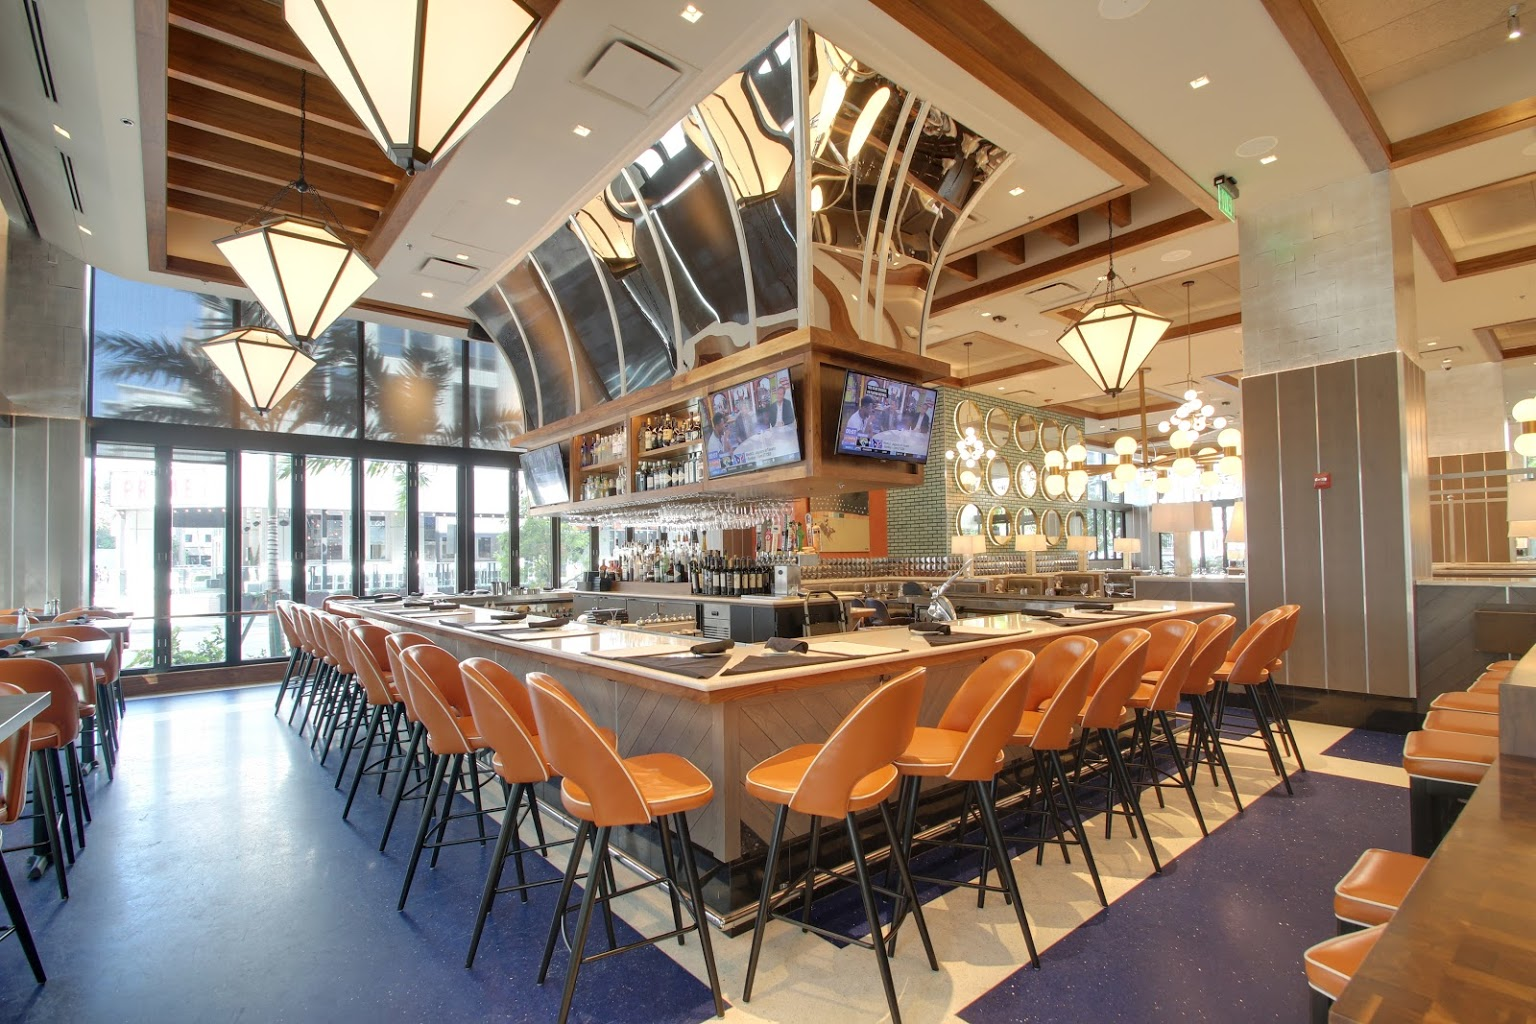 bar seating at Del Frisco's Grille Steak house in Fort Lauderdale, FL